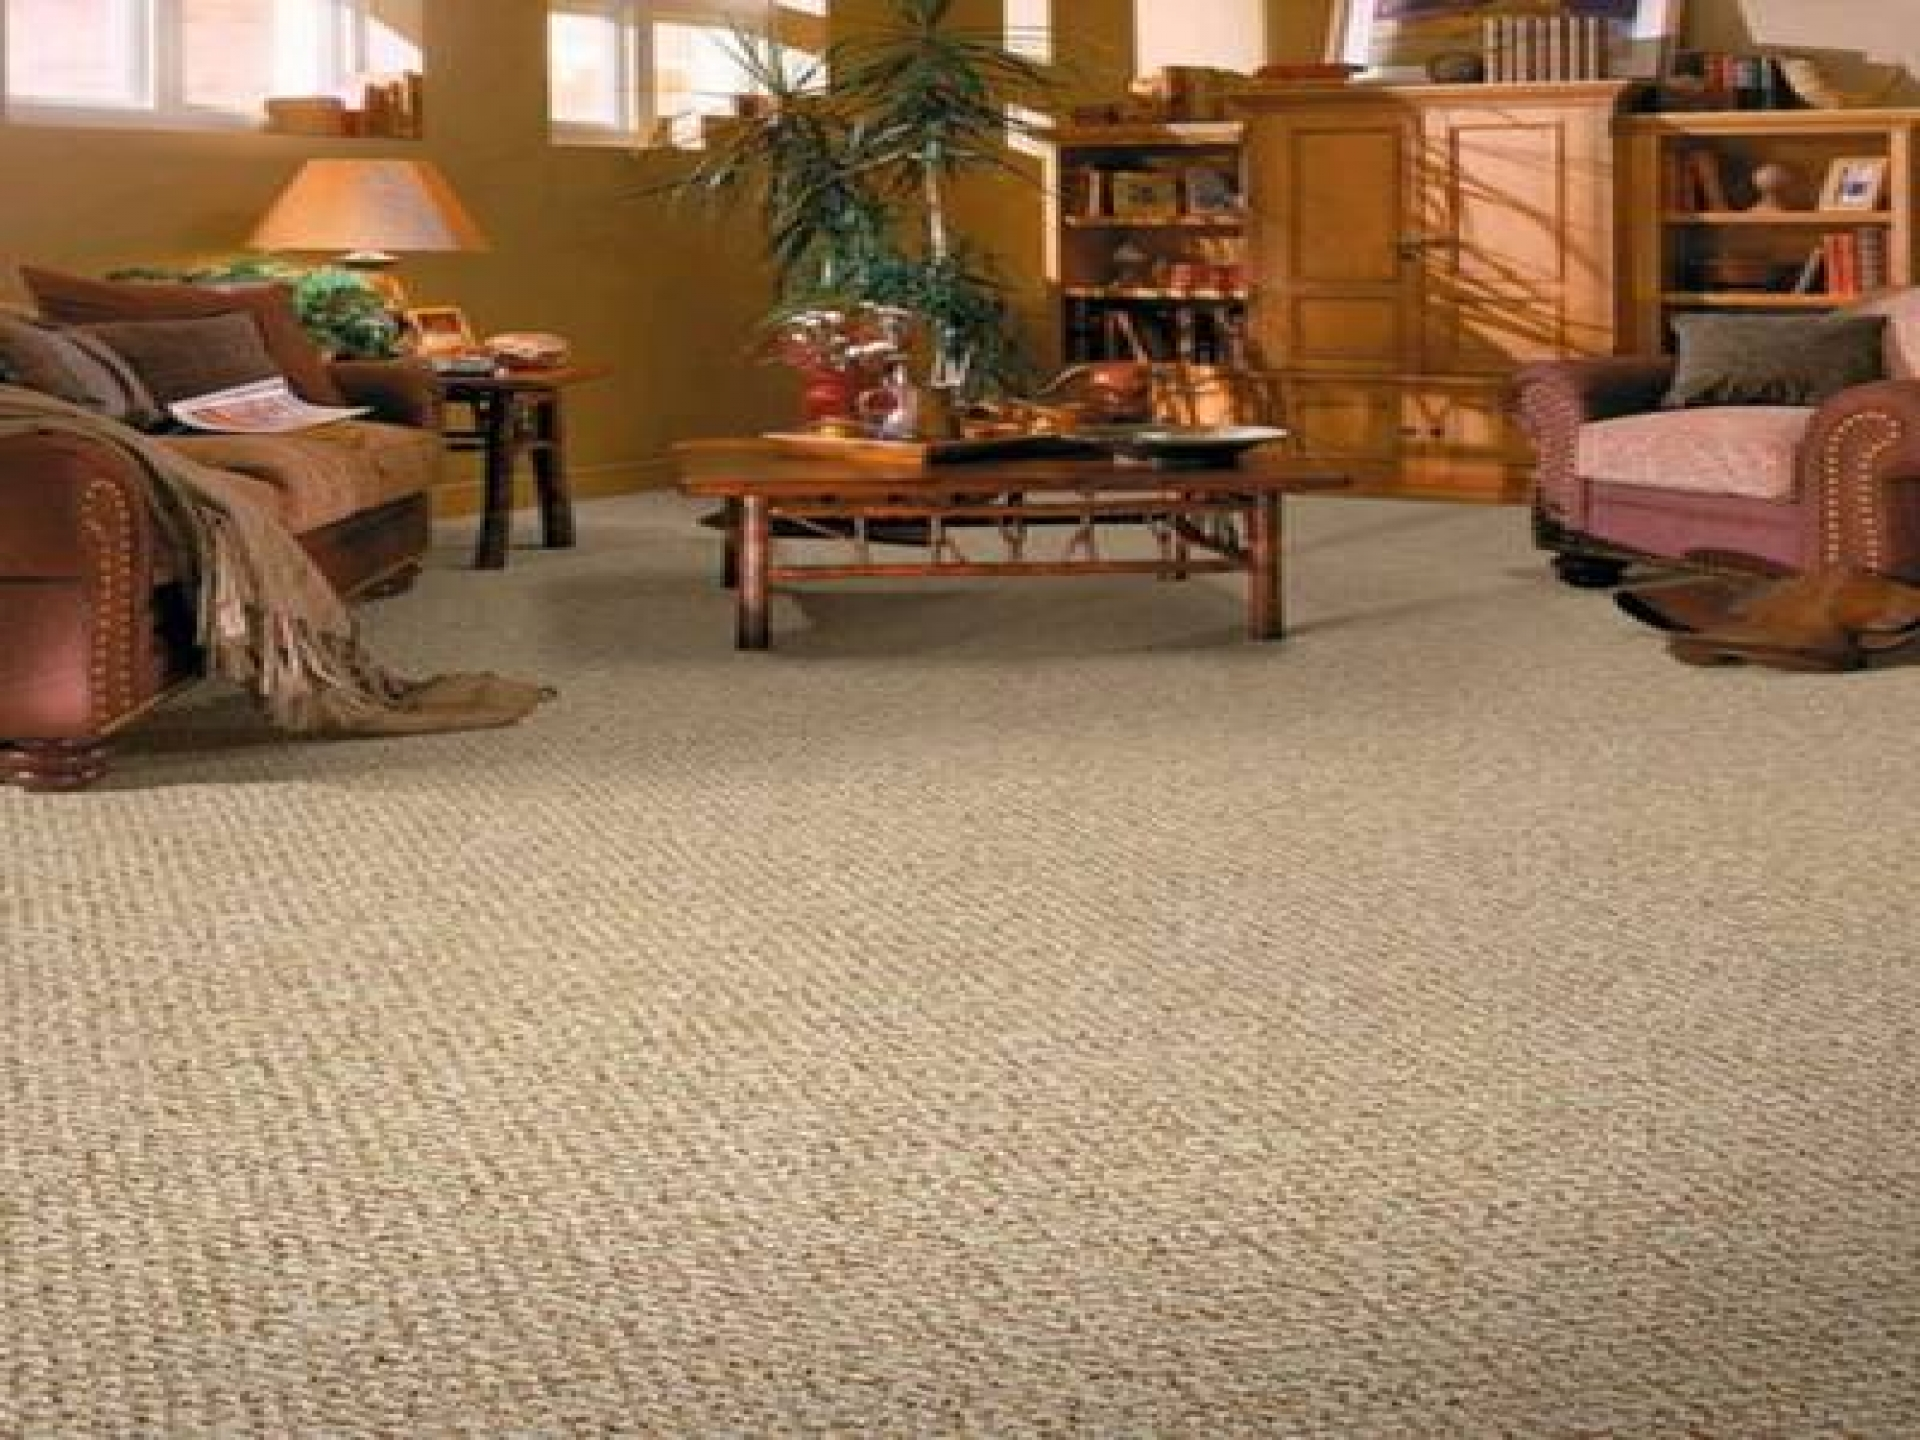 carpets and flooring online full size of living room:best online rug stores area rugs on sale rug FPZPCEG